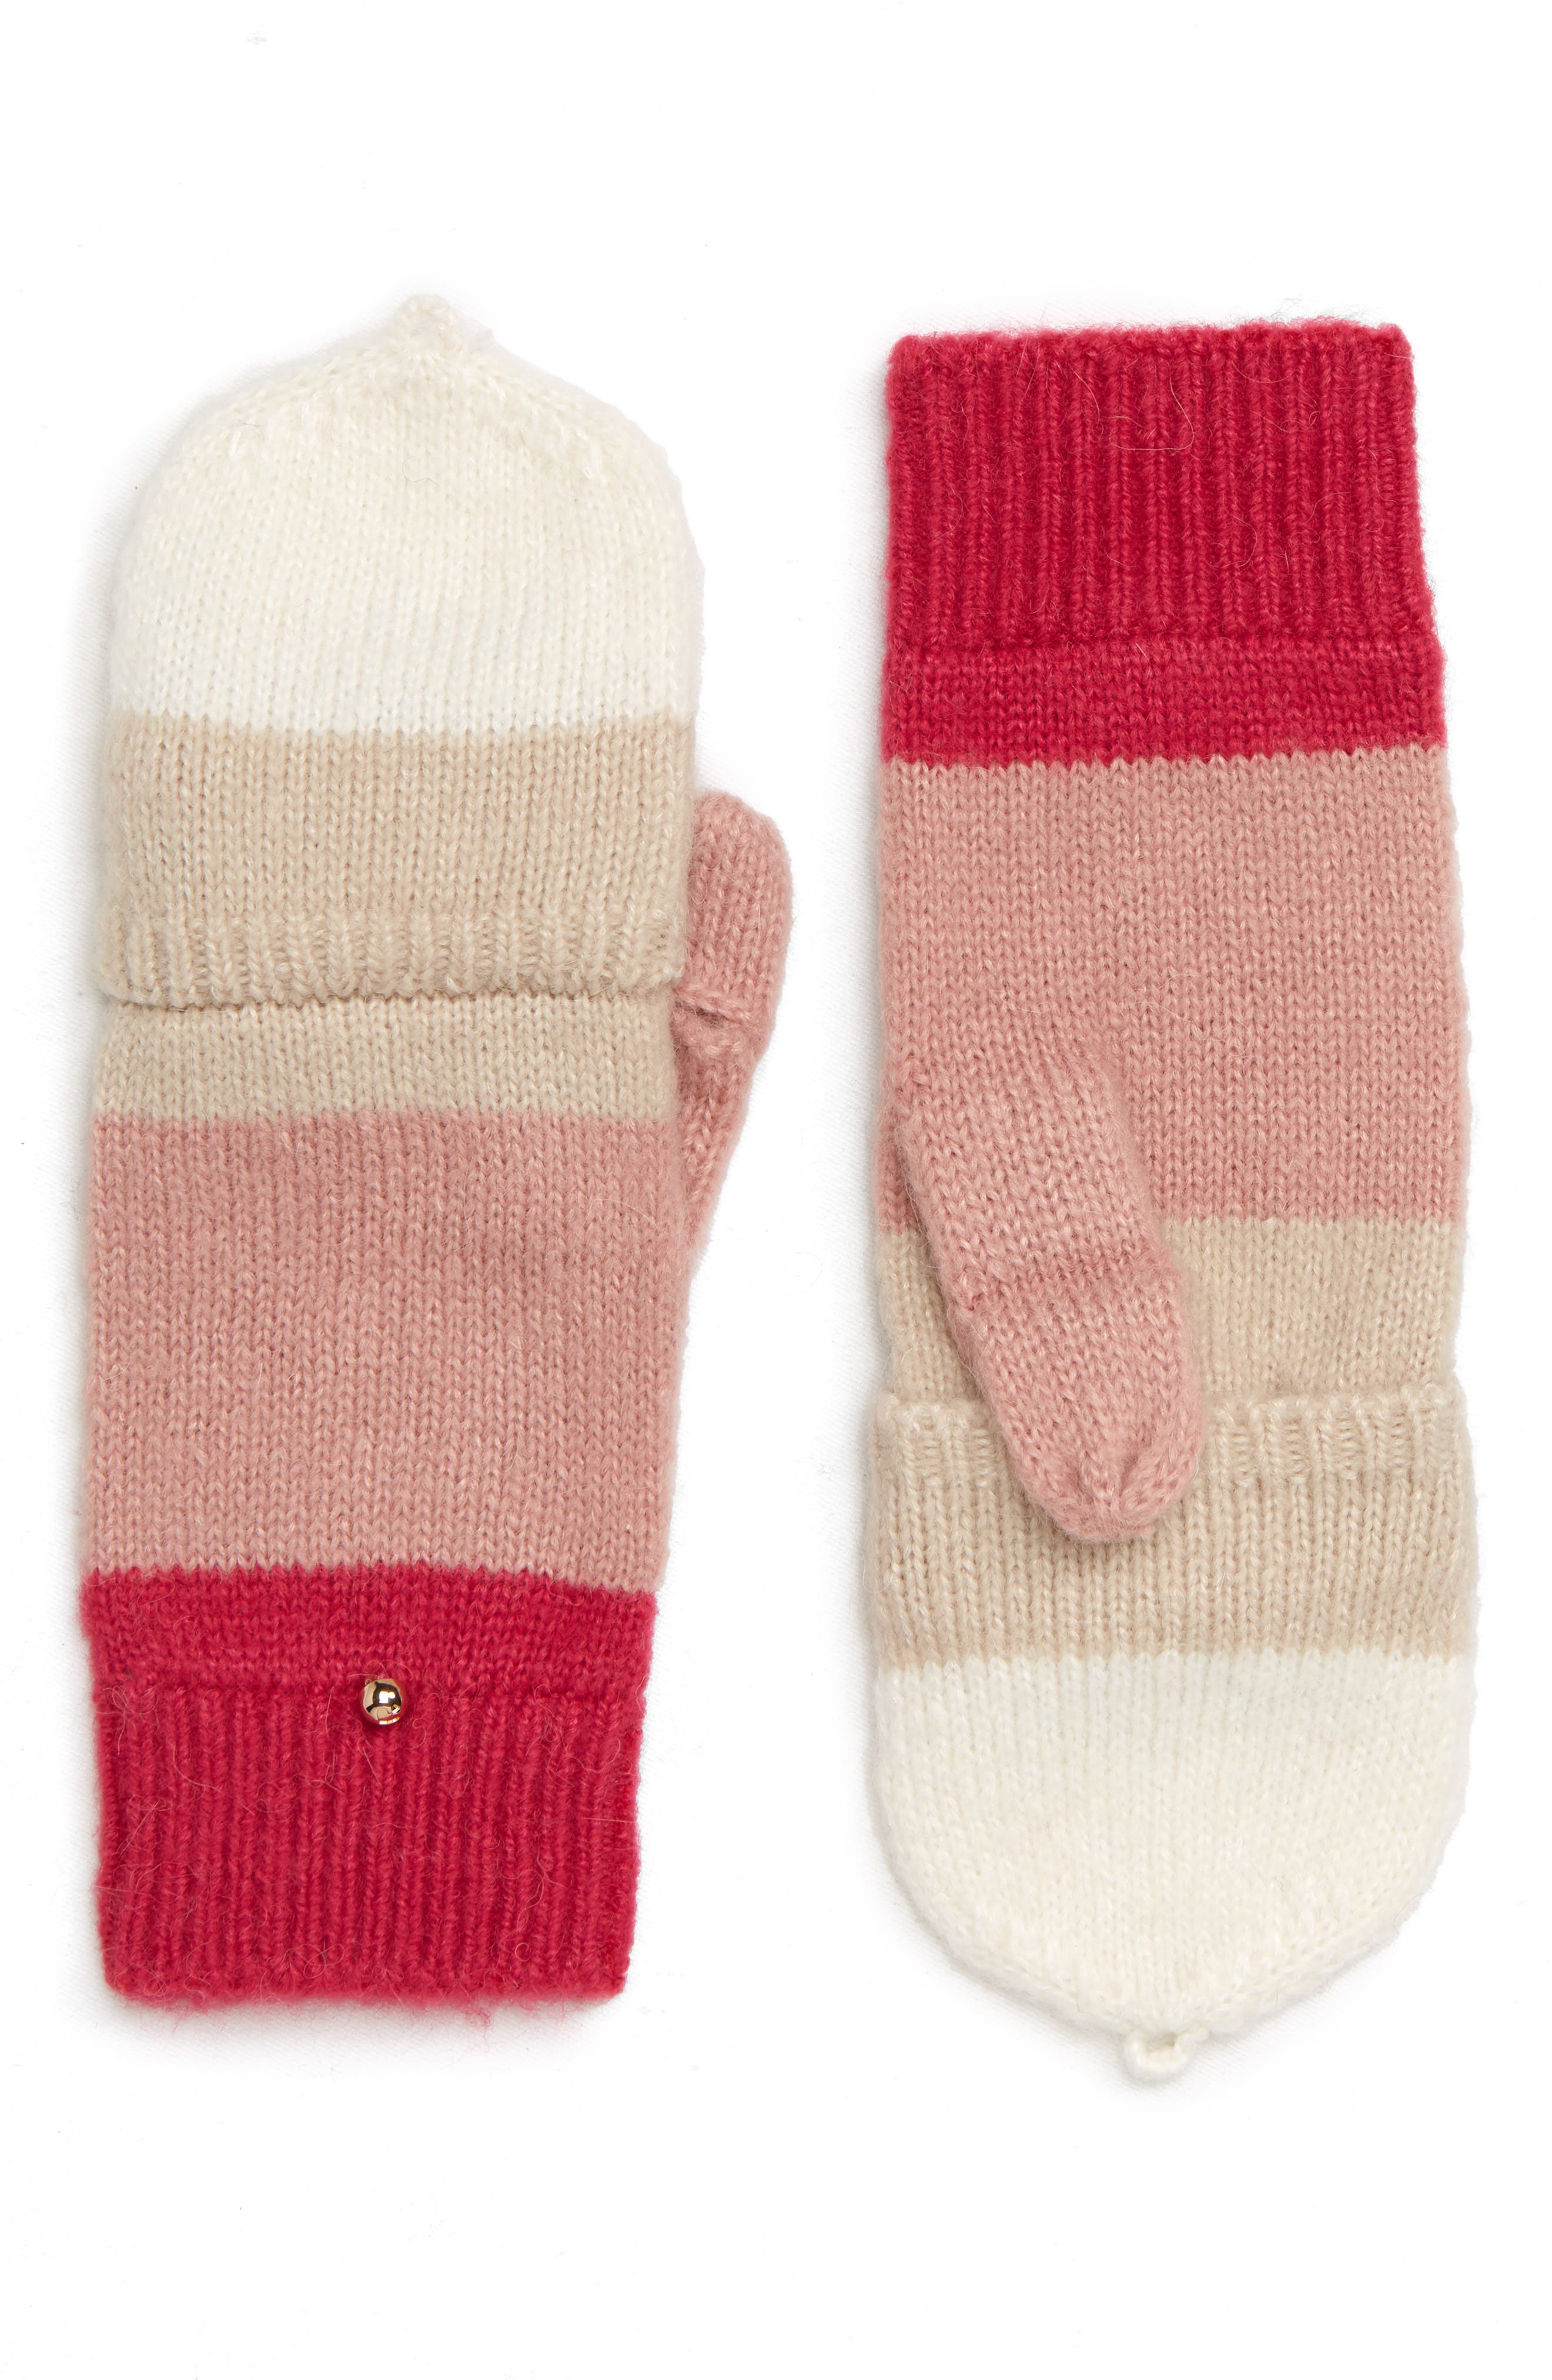 brushed knit colorblock convertible mittens,                             Alternate thumbnail 2, color,                             CREAM/ OATMEAL/ PEONY/ BEGONIA